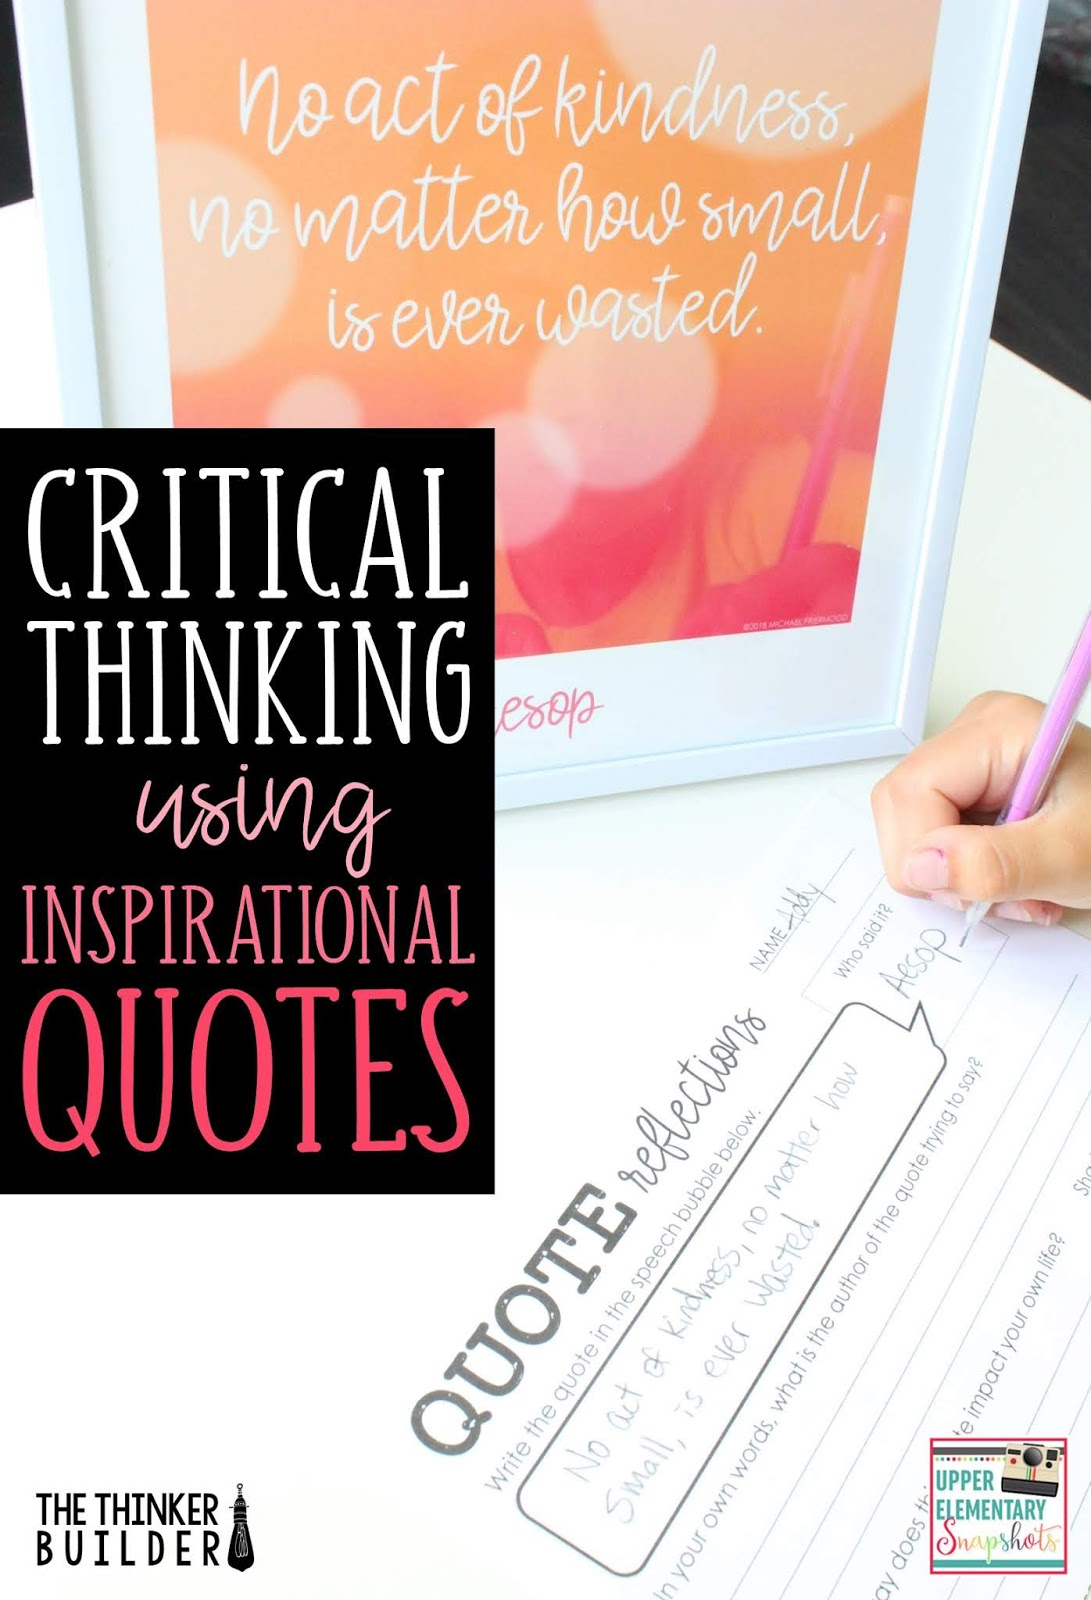 critical thinking using inspirational quotes | upper elementary